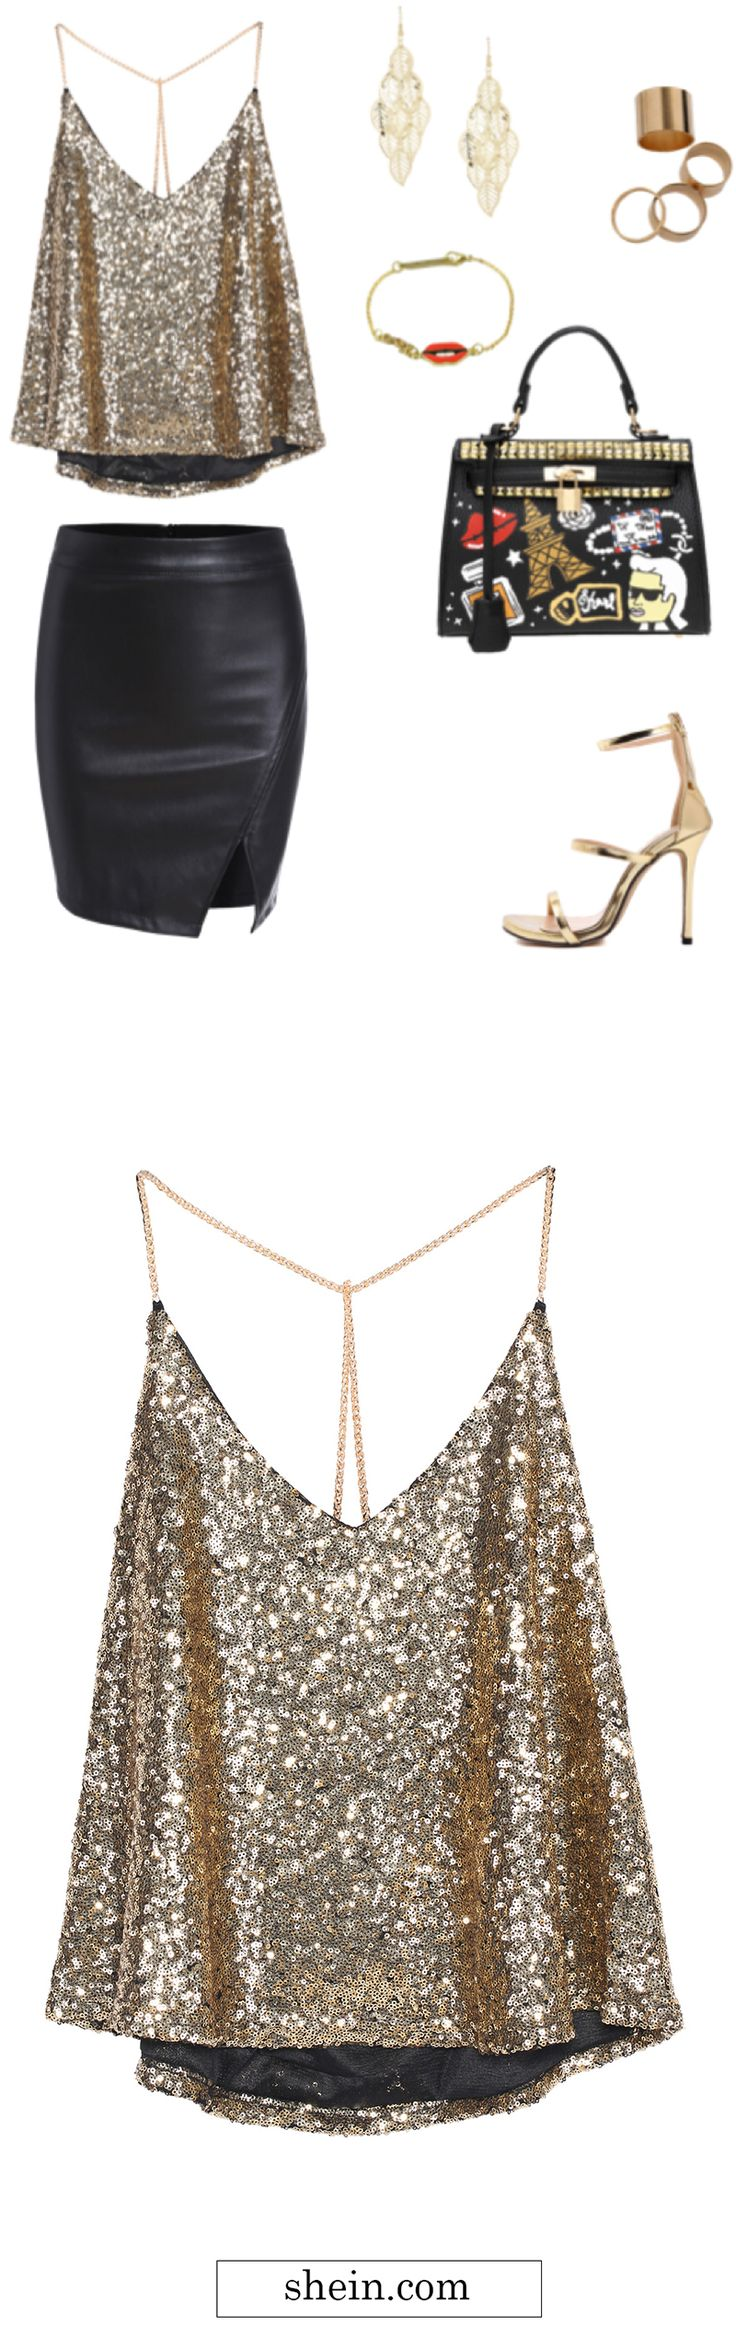 Amazing outfit for party with sequined cami top & leather skirt.